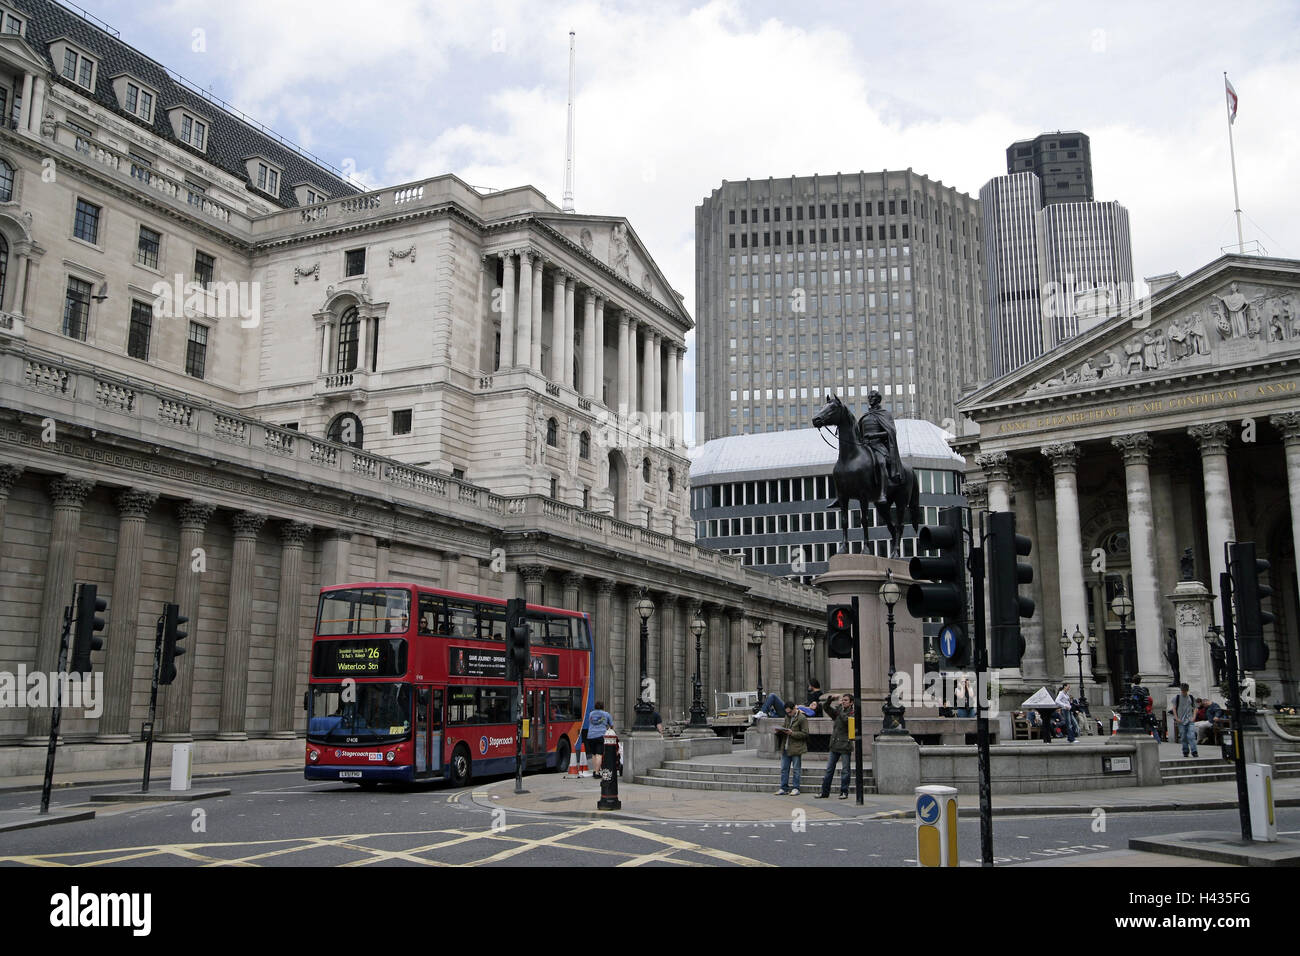 Great Britain, England, London, bank of England, royal Exchange, - Stock Image